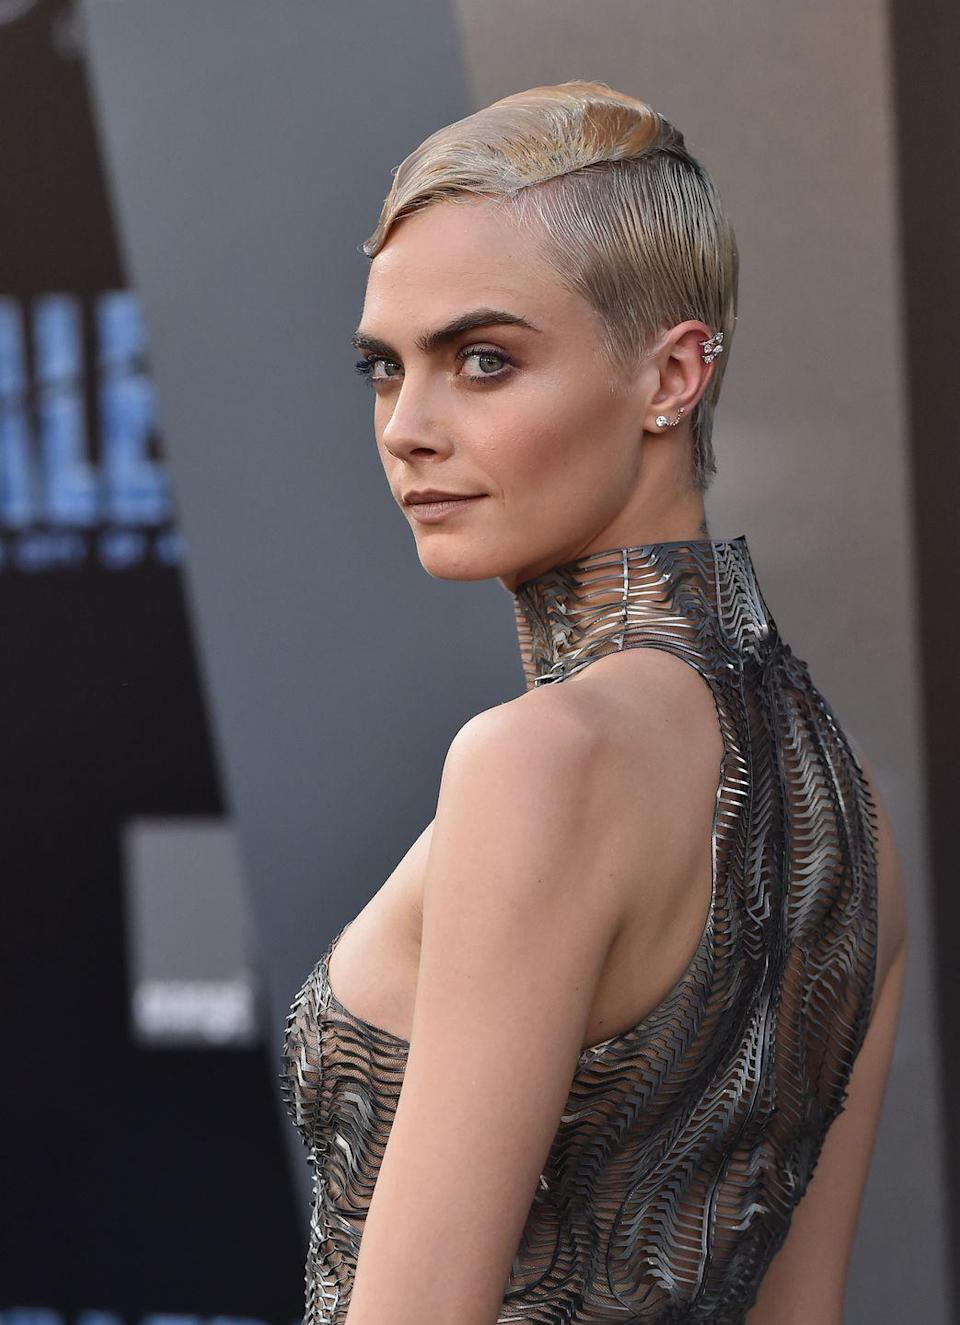 <p>Cara's chain joint studs and jagged diamond helix earring create the perfect ear bling to compliment her cool as hell metallic, space-y get up. </p>